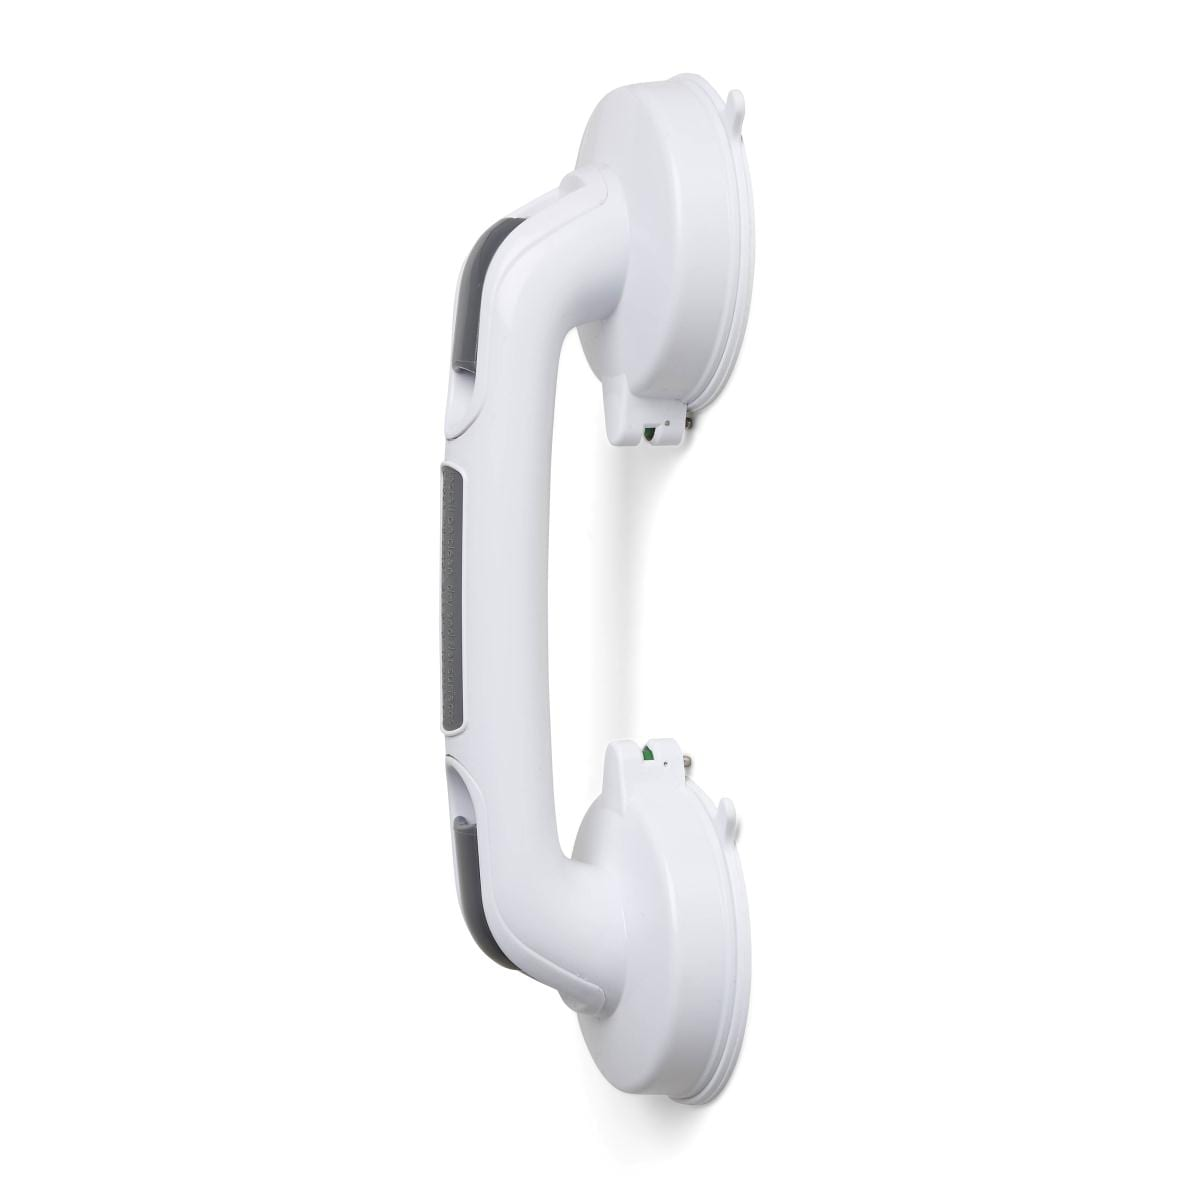 easy to install or move where needed grab bar